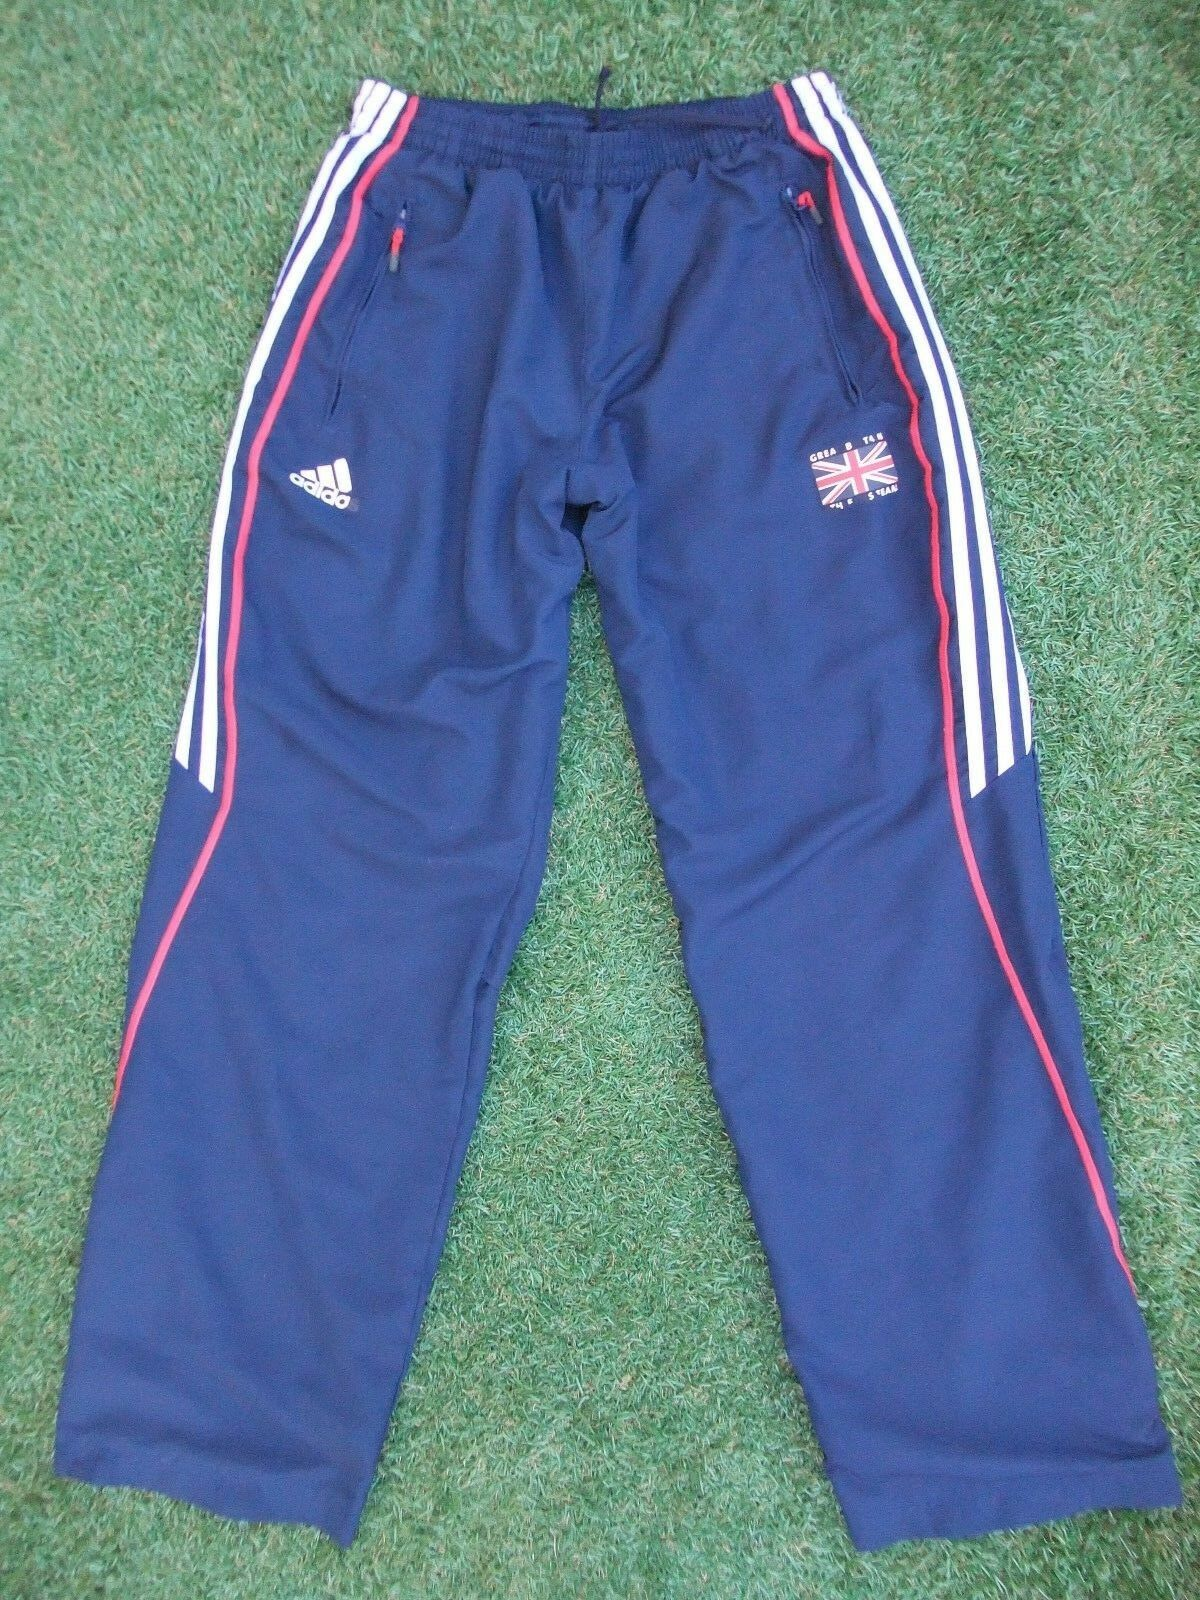 ADIDAS GB GREAT BRITAIN ATHLETIC TEAM ATHLETE ISSUE JOGGING PANTS FIT 26   32